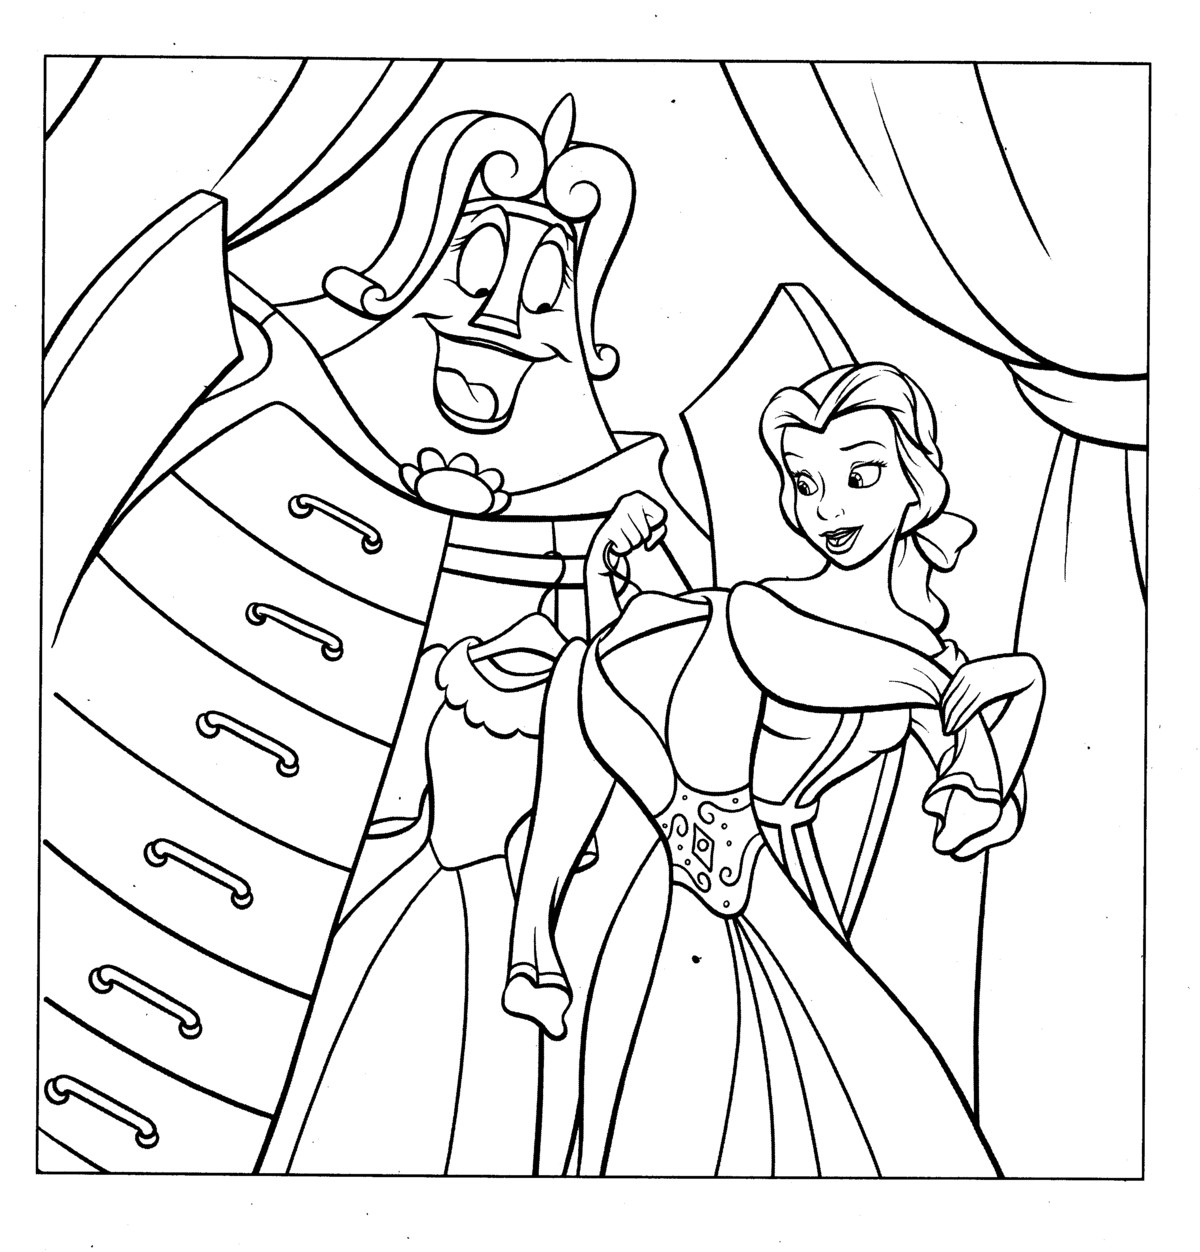 colouring pages for disney princesses disney princess coloring pages minister coloring for disney colouring princesses pages